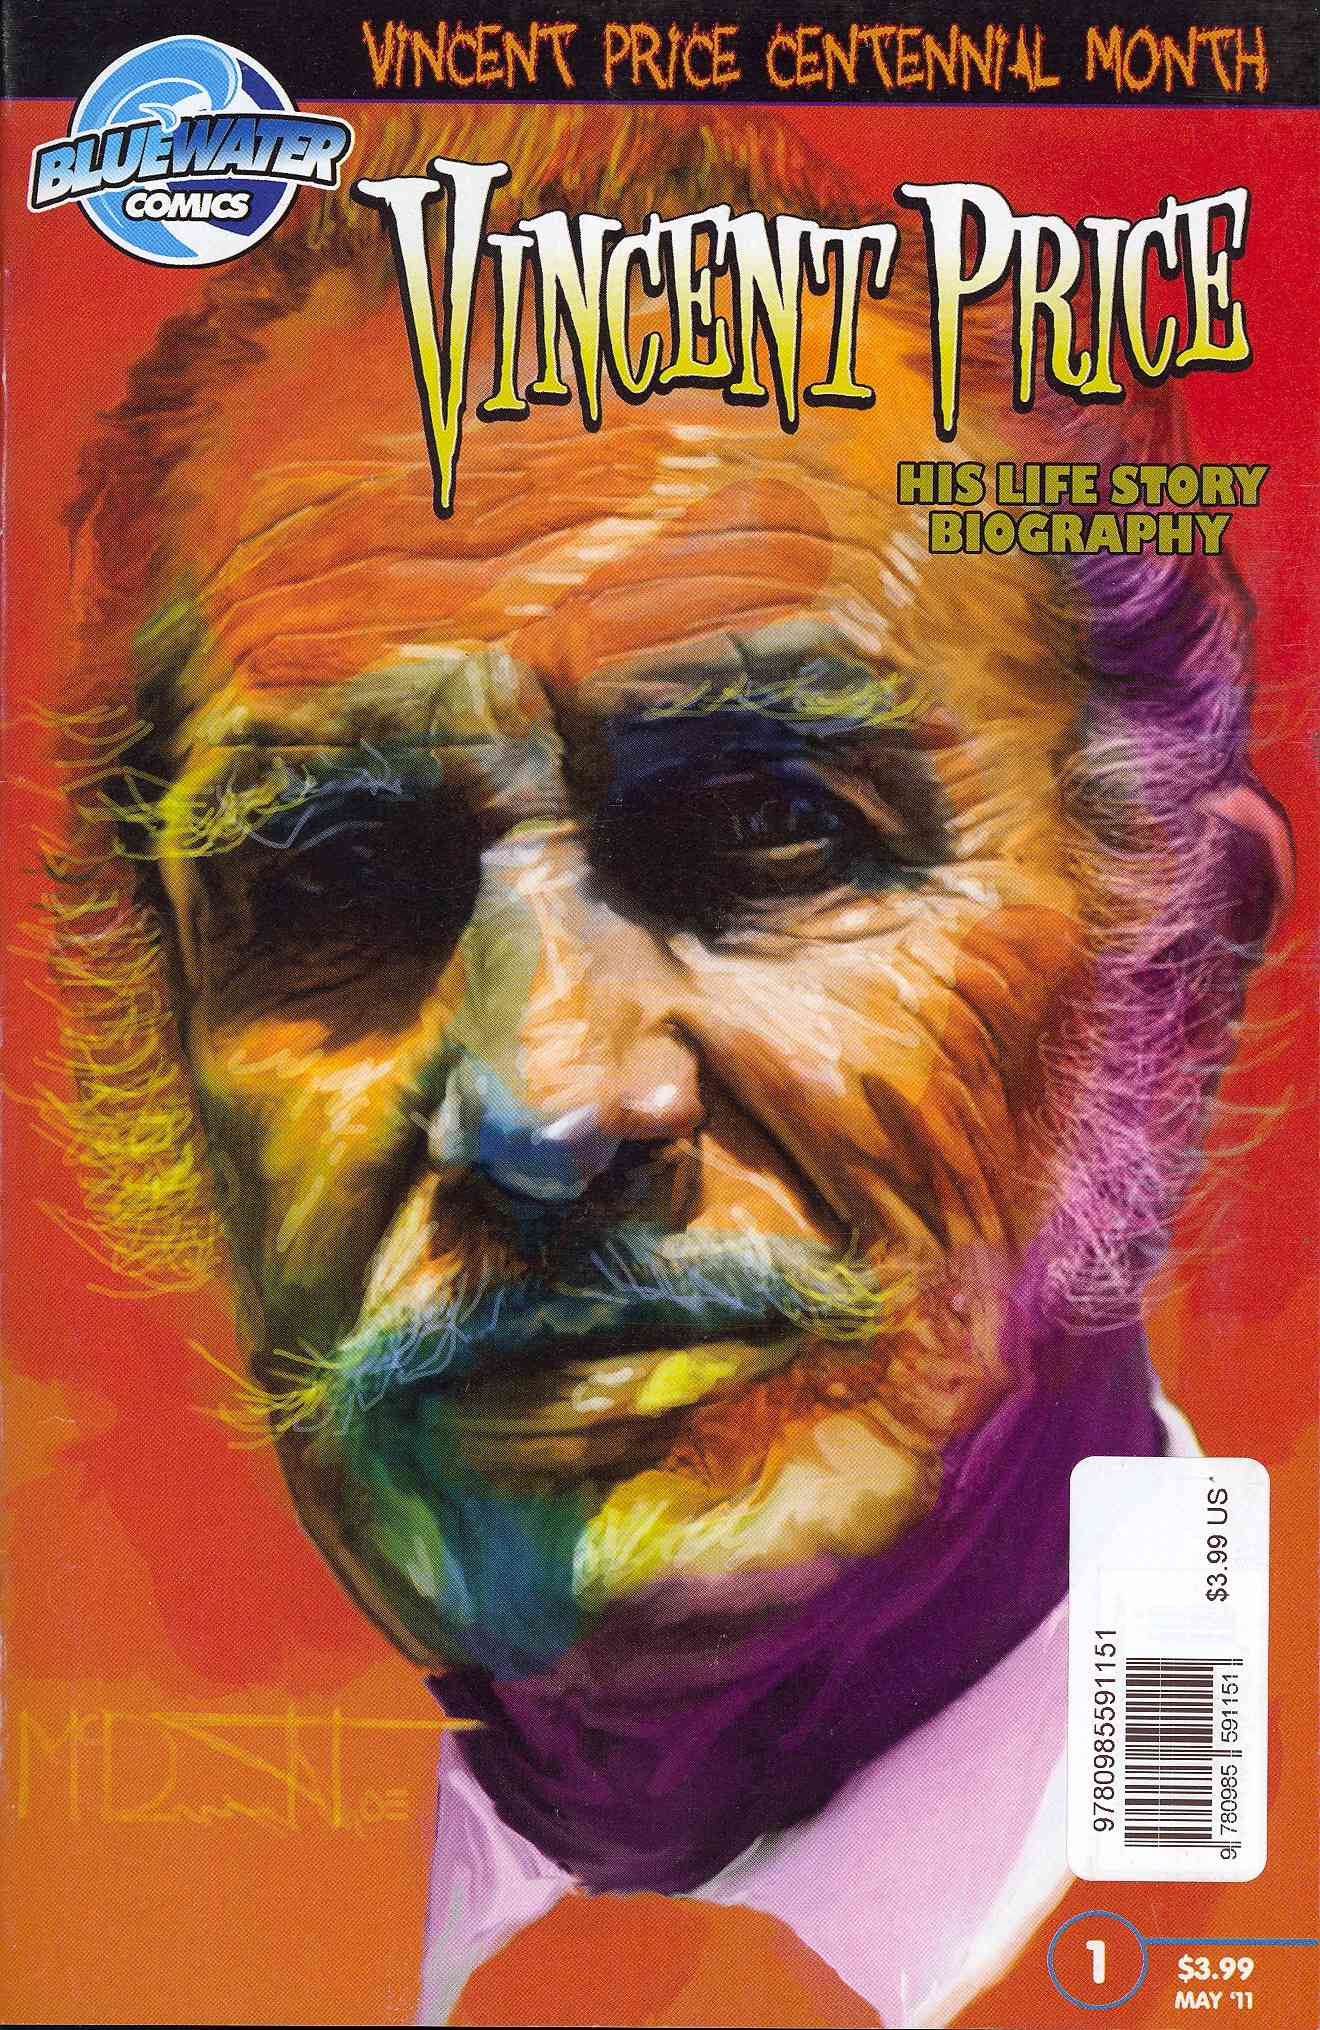 Vincent Price: His Life Story: Biography (Paperback)